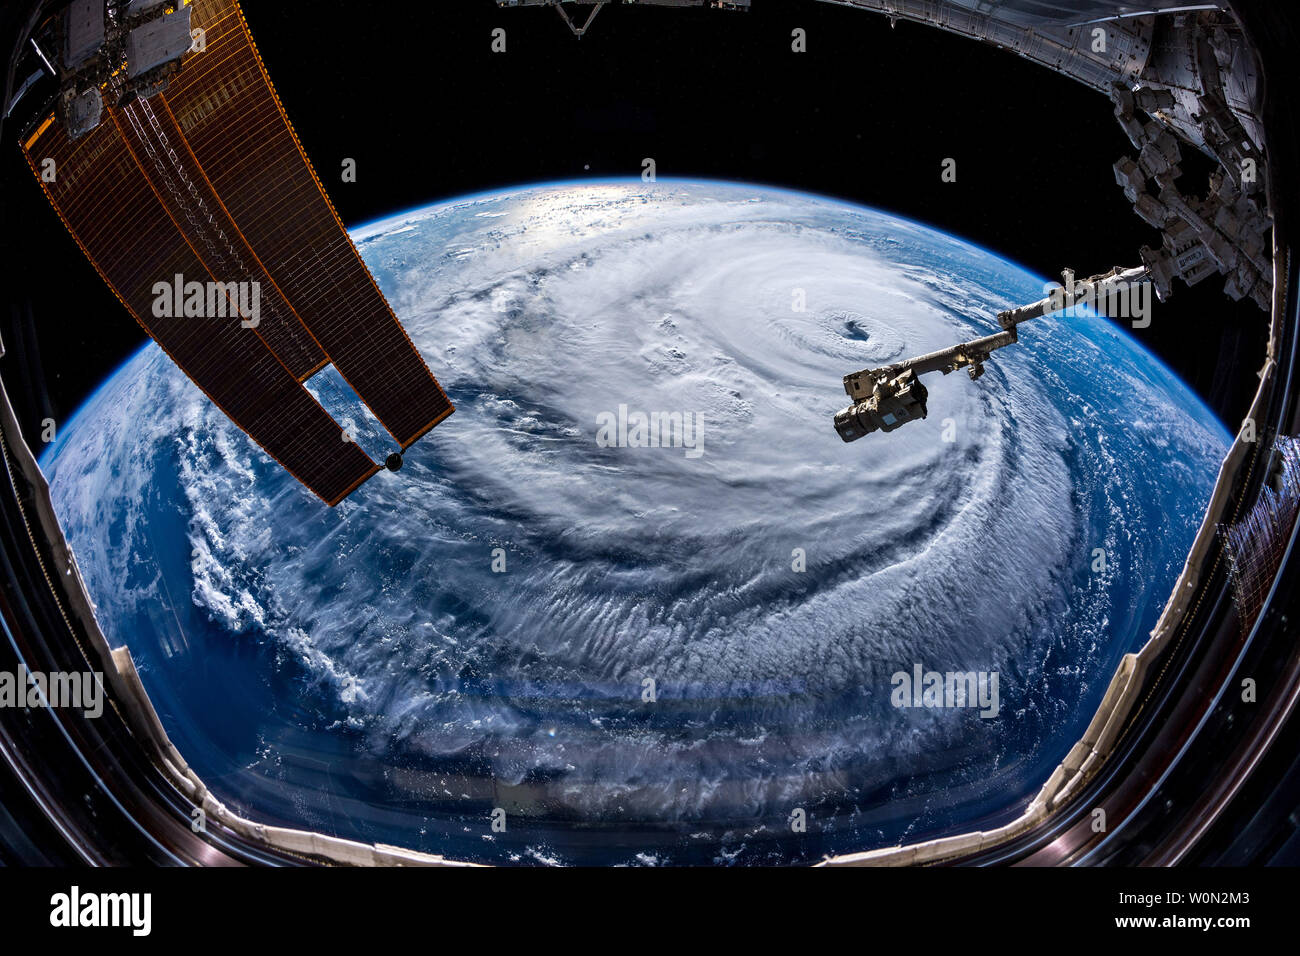 Tweeting on September 12, 2018, from aboard the International Space Station, ESA astronaut Alexander Gerst shared: 'Watch out, America! #HurricaneFlorence is so enormous, we could only capture her with a super wide-angle lens from the @Space_Station, 400 km directly above the eye. Get prepared on the East Coast, this is a no-kidding nightmare coming for you. #Horizons' Photo by Alexander Gerst/ESA/NASA/UPI - Stock Image